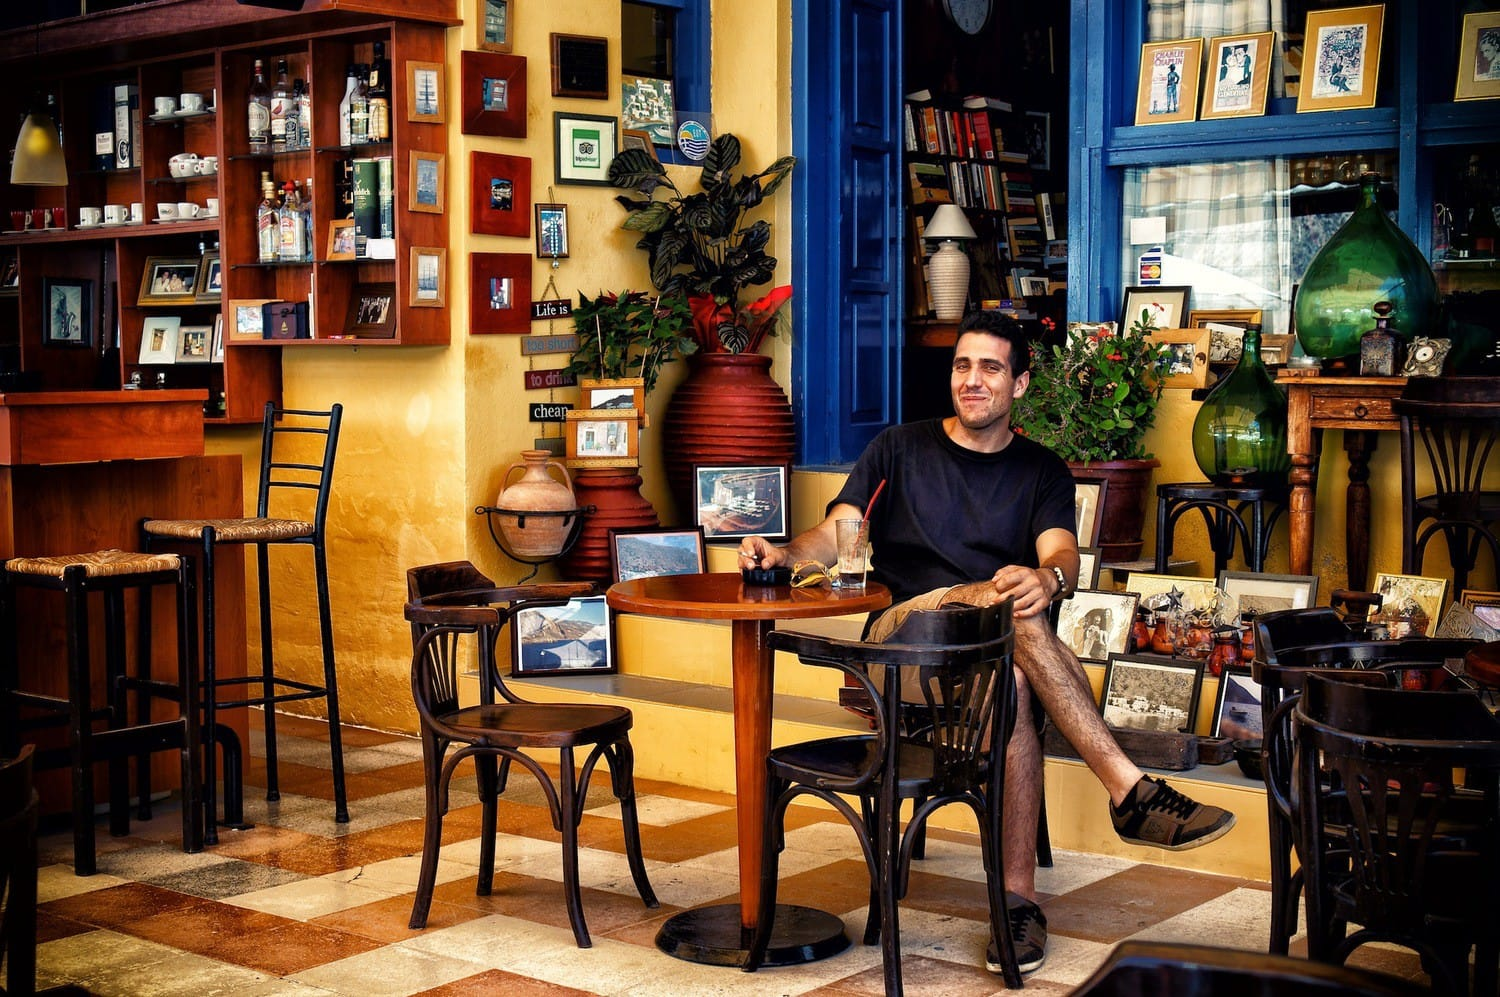 christos-the-cafe-owner